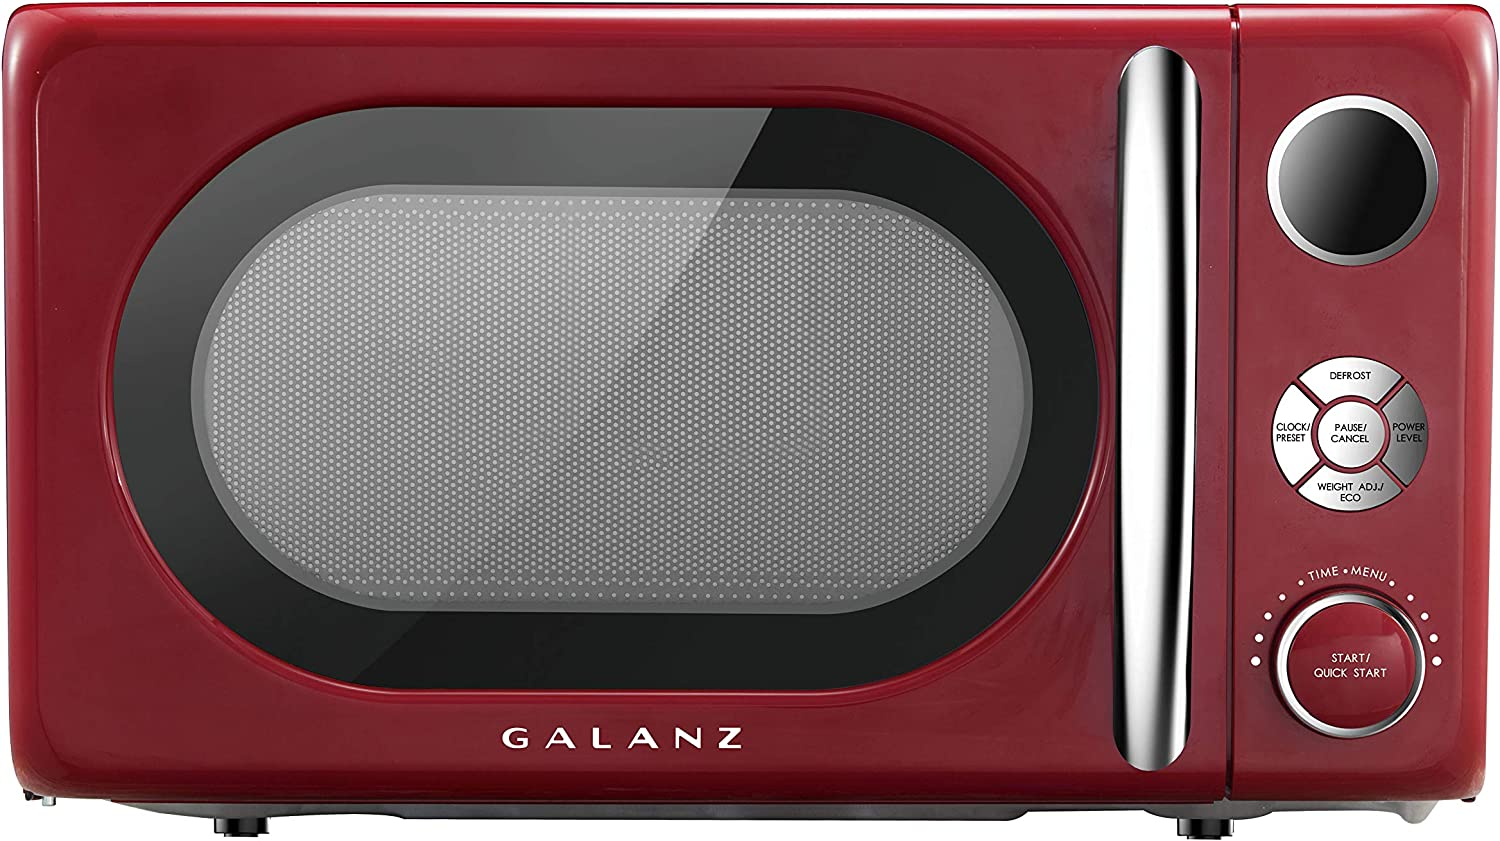 Galanz GLCMKA07RDR-07 Retro 0.7 cu. Ft. 700-Watt Countertop Microwave, Hot Rod Red